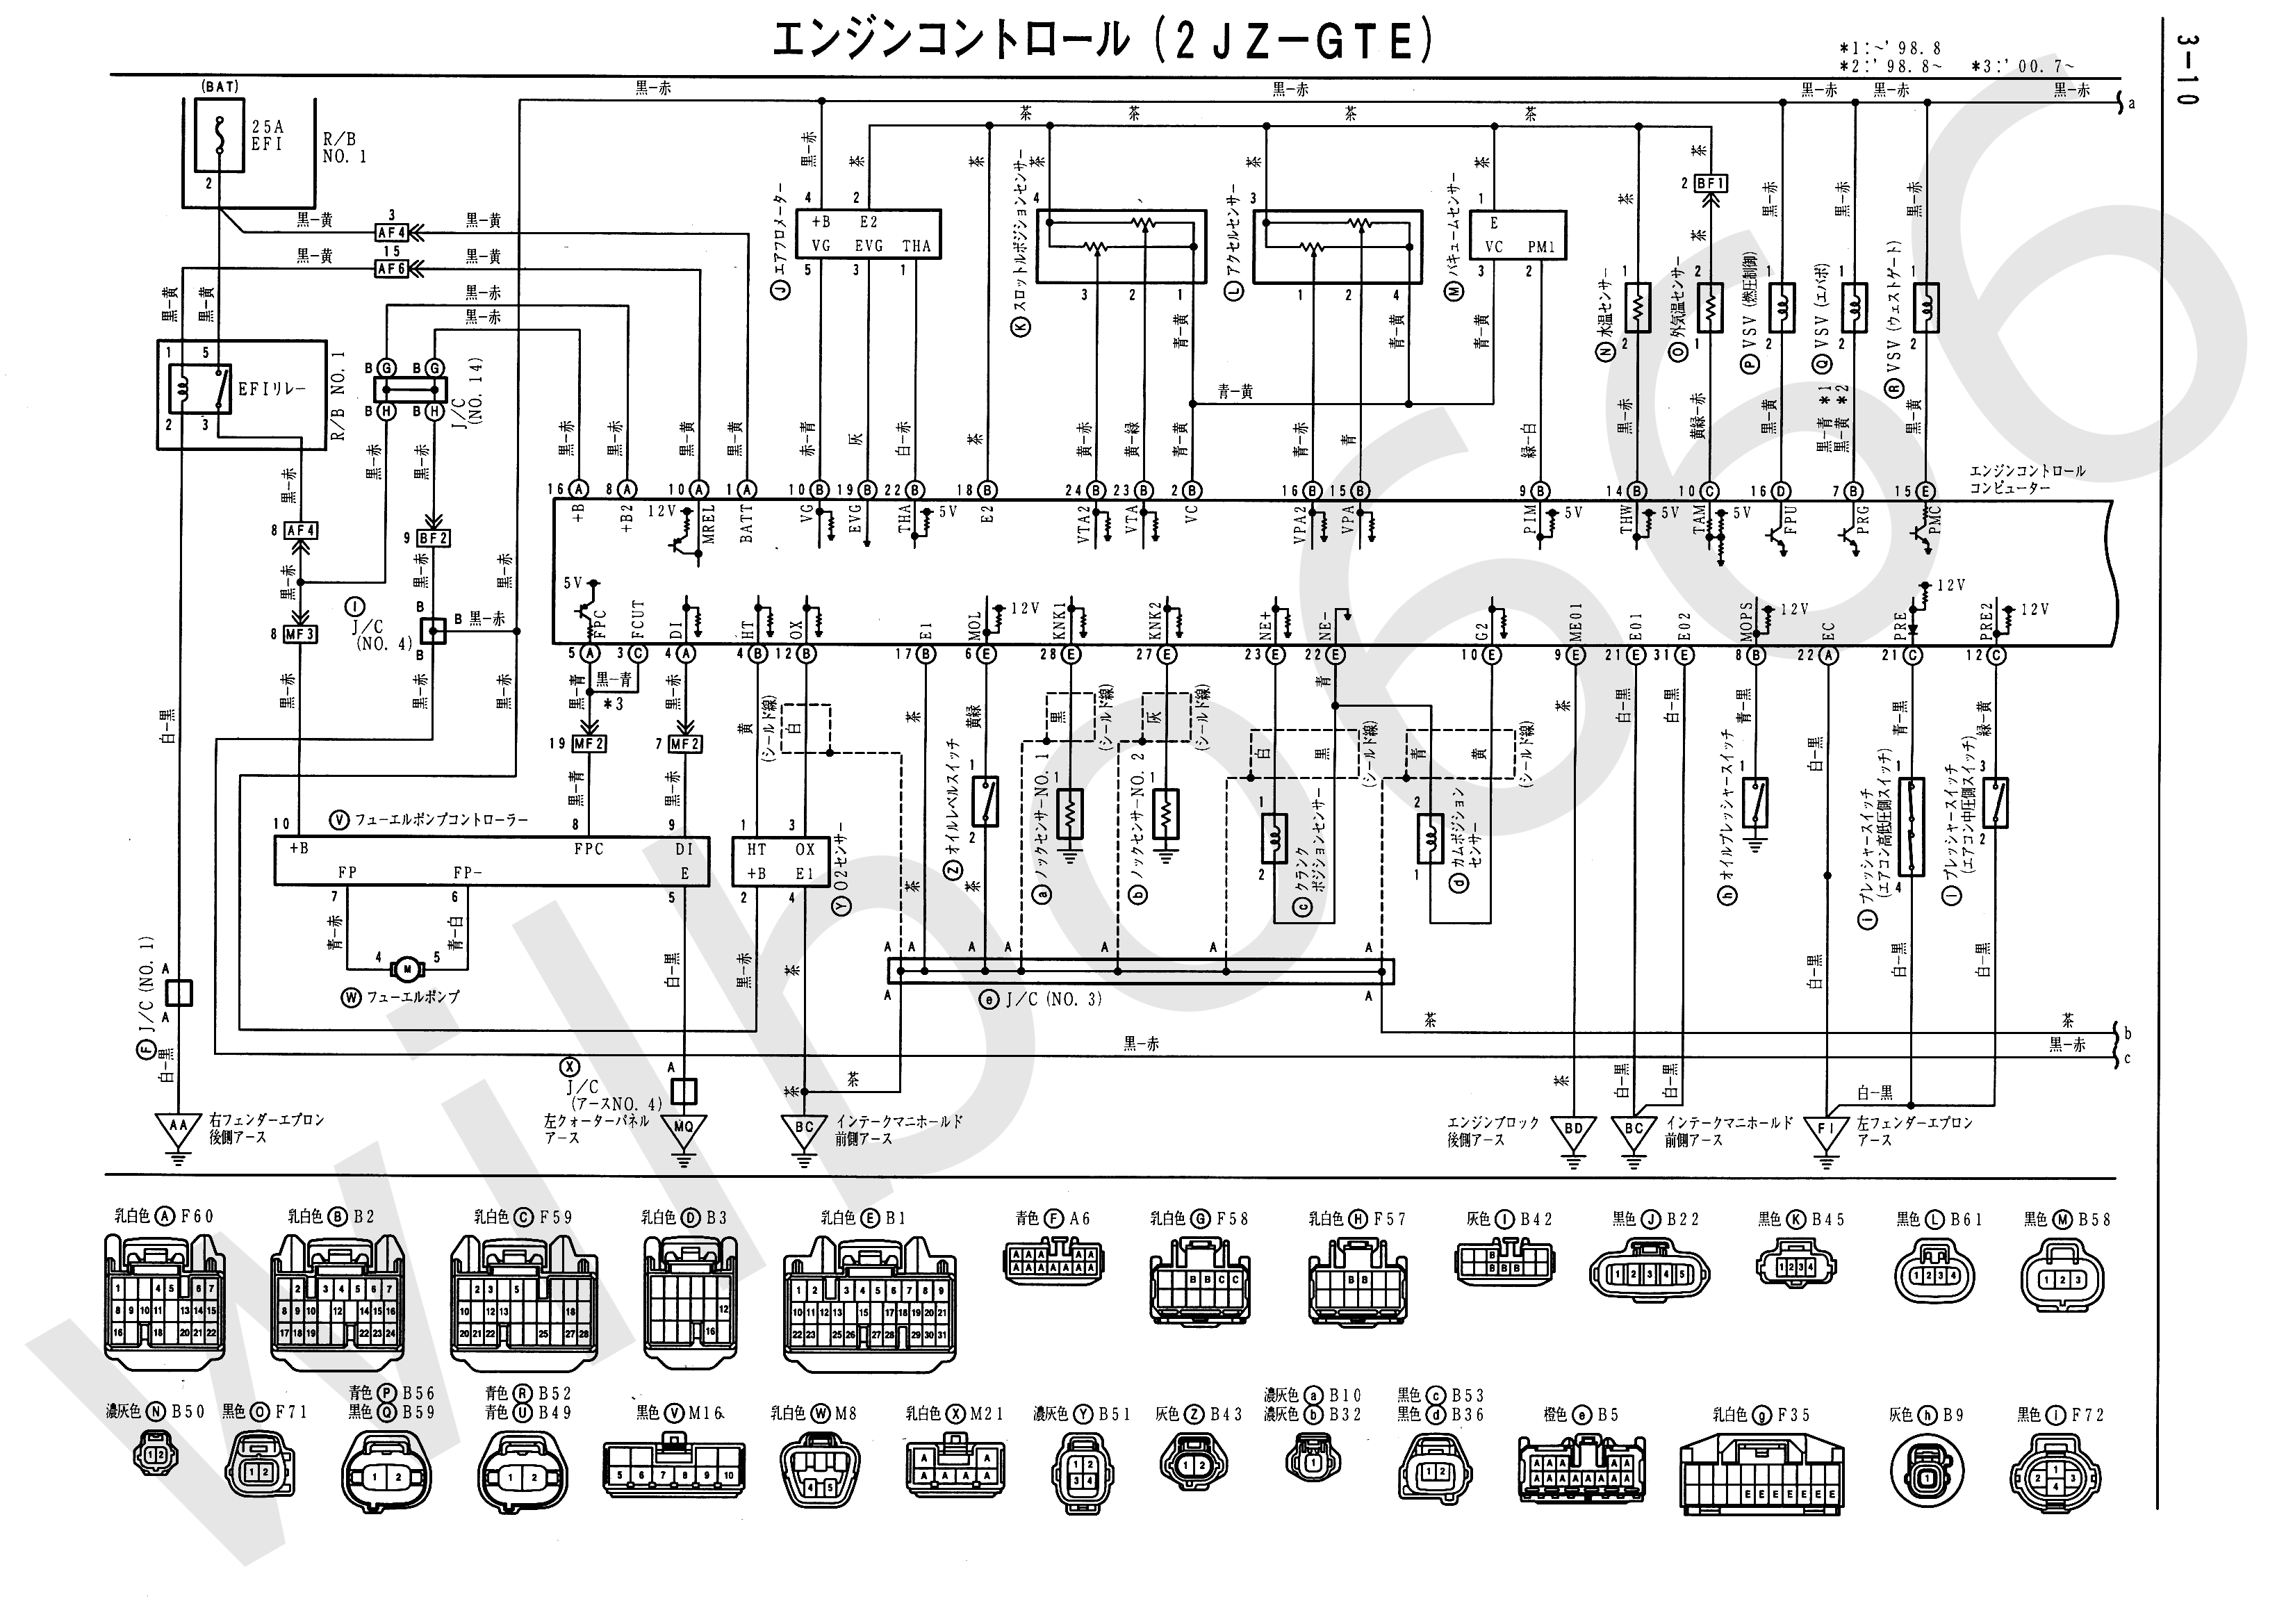 Wiring Diagram Momentary Switch 31 Images Single Pole Double Throw Jzs161 Electrical 6748505 3 10resize6652c471 Spdt